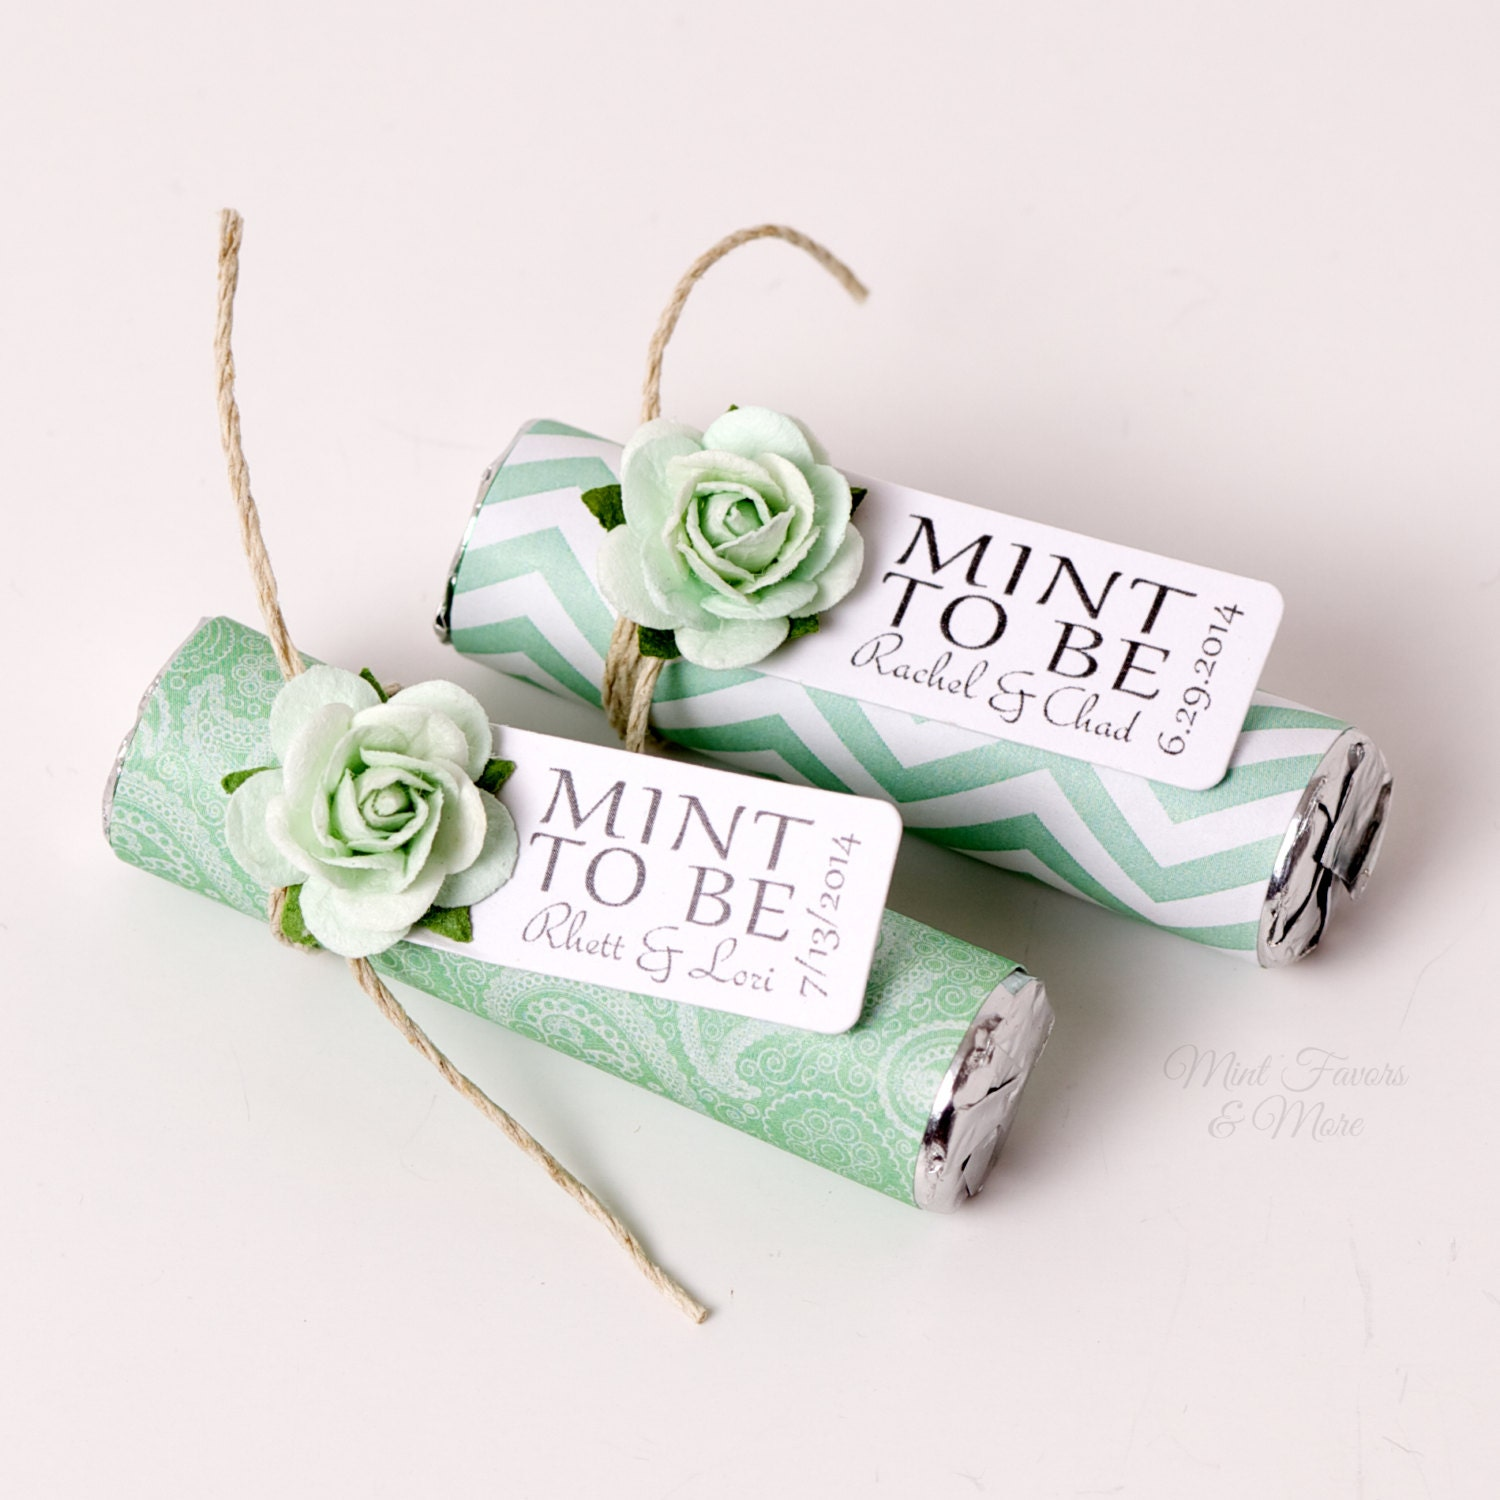 Unique Wedding Favors: Mint Wedding Favors With Personalized Mint To Be